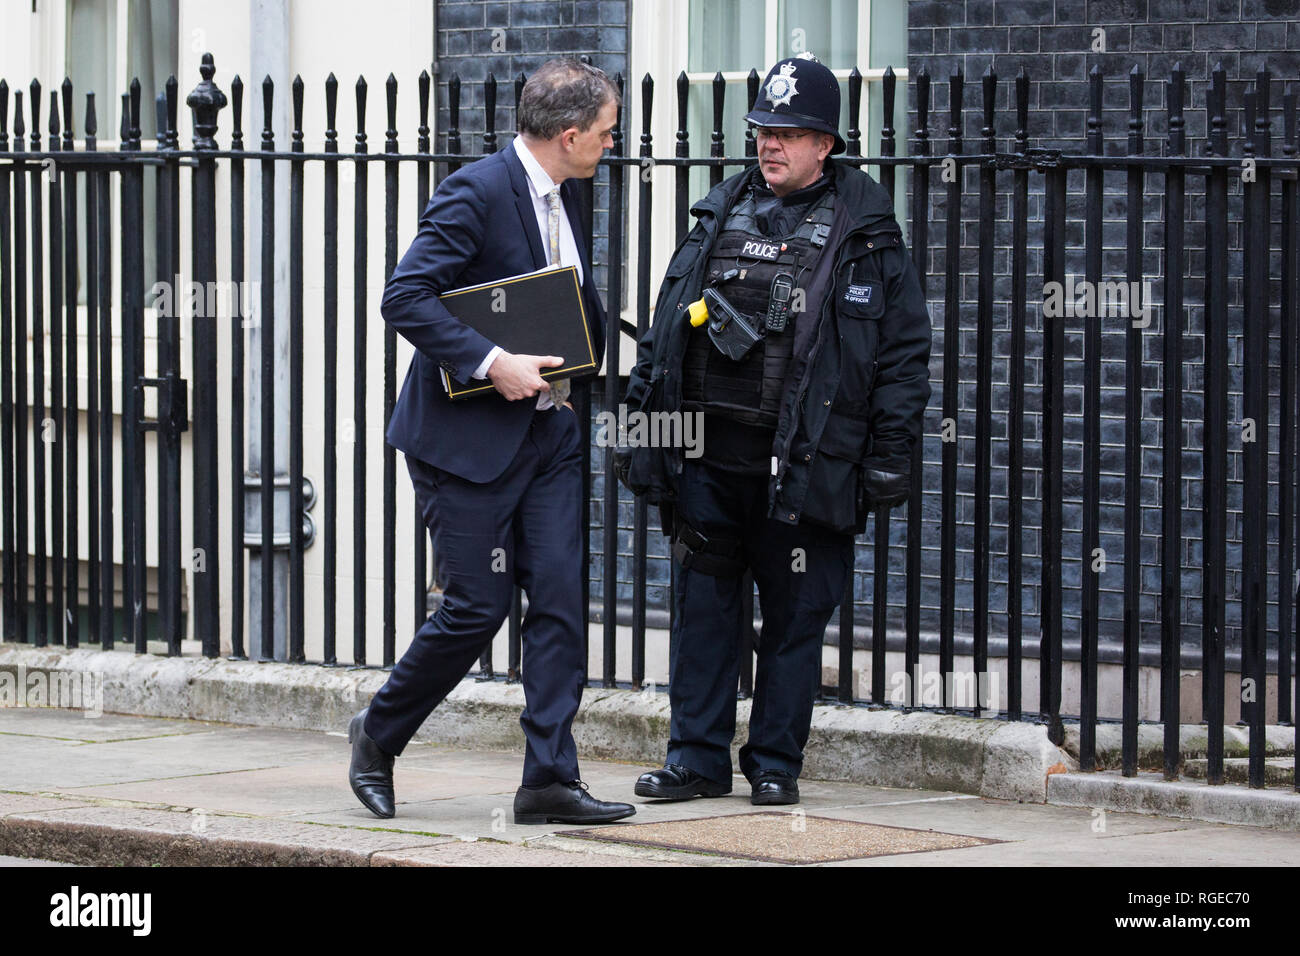 London, UK. 29th Jan, 2019. Julian Smith MP, Chief Whip, leaves 10 Downing Street following a Cabinet meeting on the day of votes in the House of Commons on amendments to Prime Minister Theresa May's final Brexit withdrawal agreement which could determine the content of the next stage of negotiations with the European Union. Credit: Mark Kerrison/Alamy Live News Stock Photo